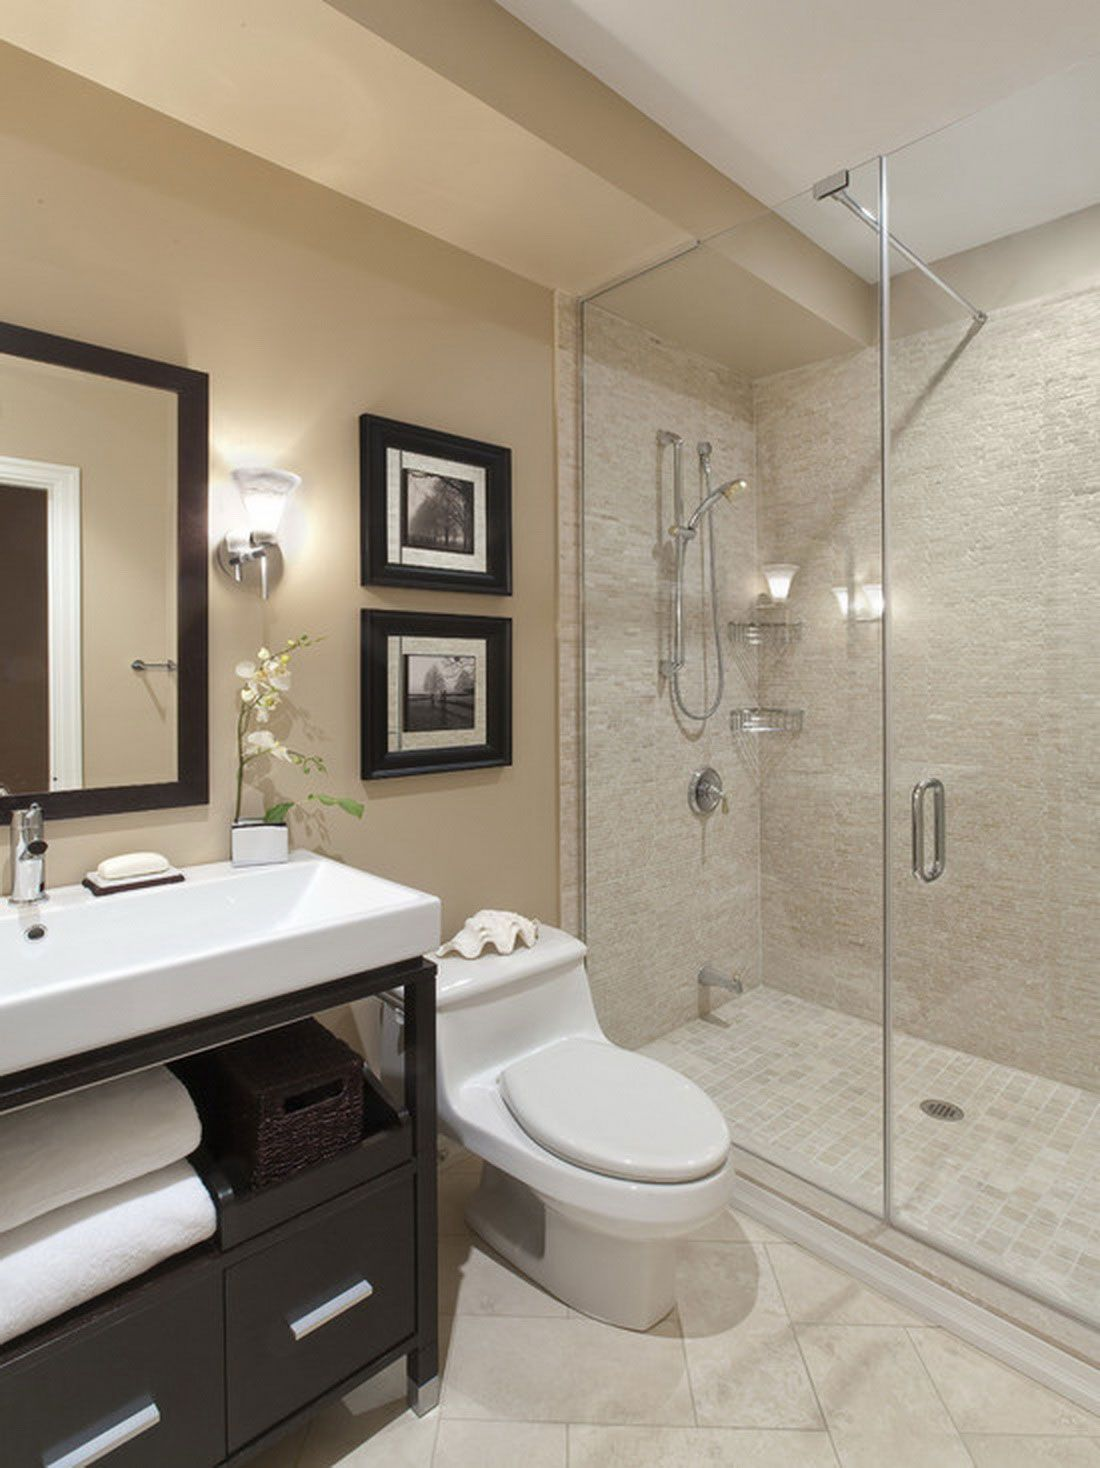 Modern Bathroom Ideas Transitional Bathroom Design Small Bathroom Remodel Bathroom Design Small